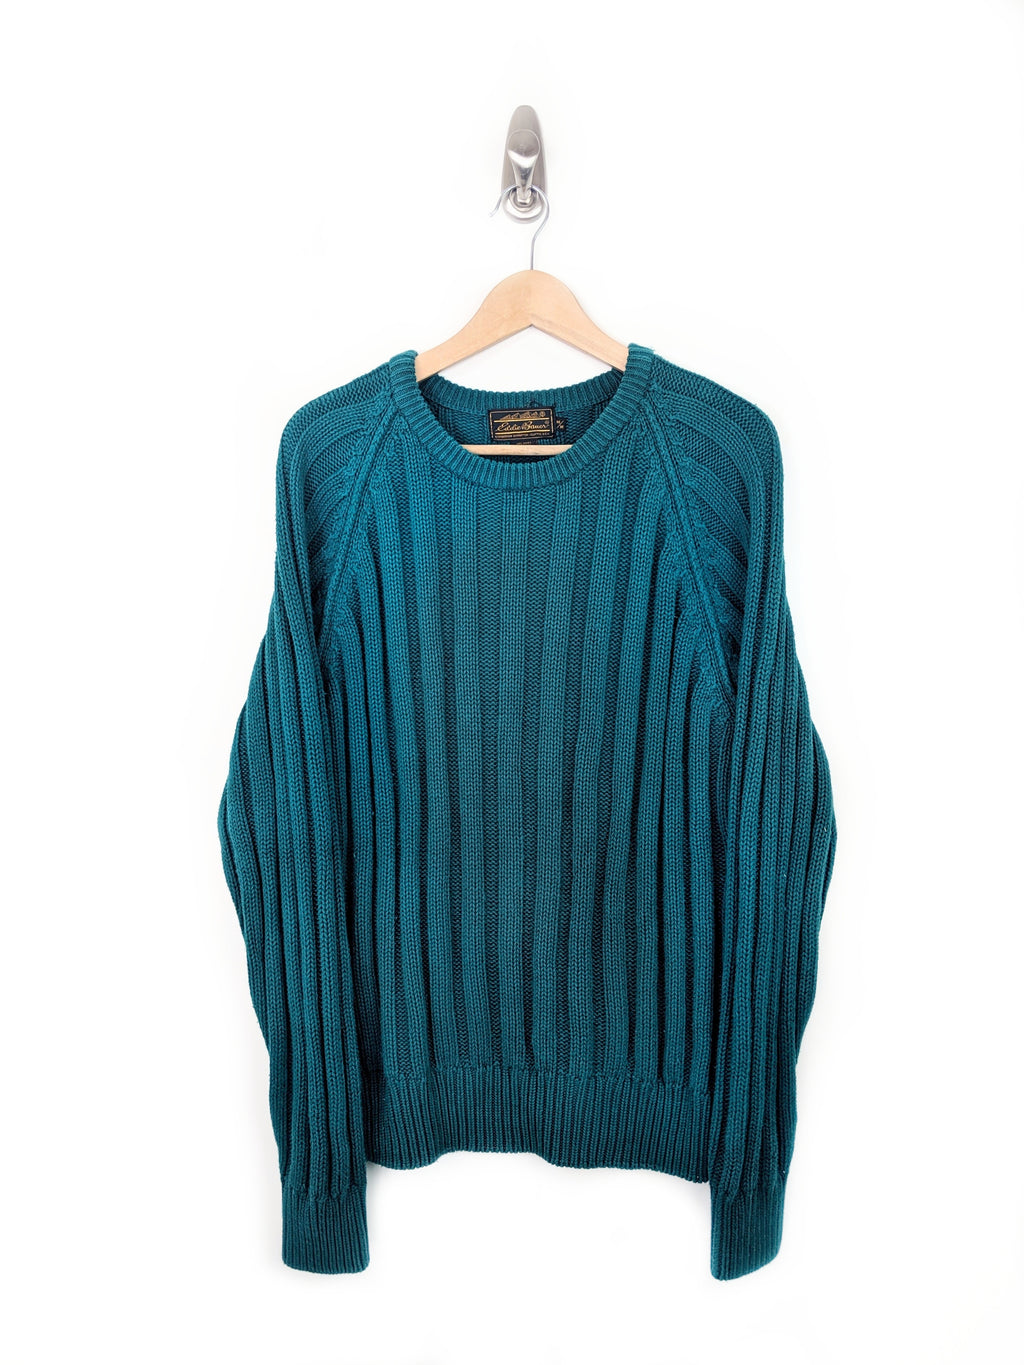 Vertical Striped Sweater (M)